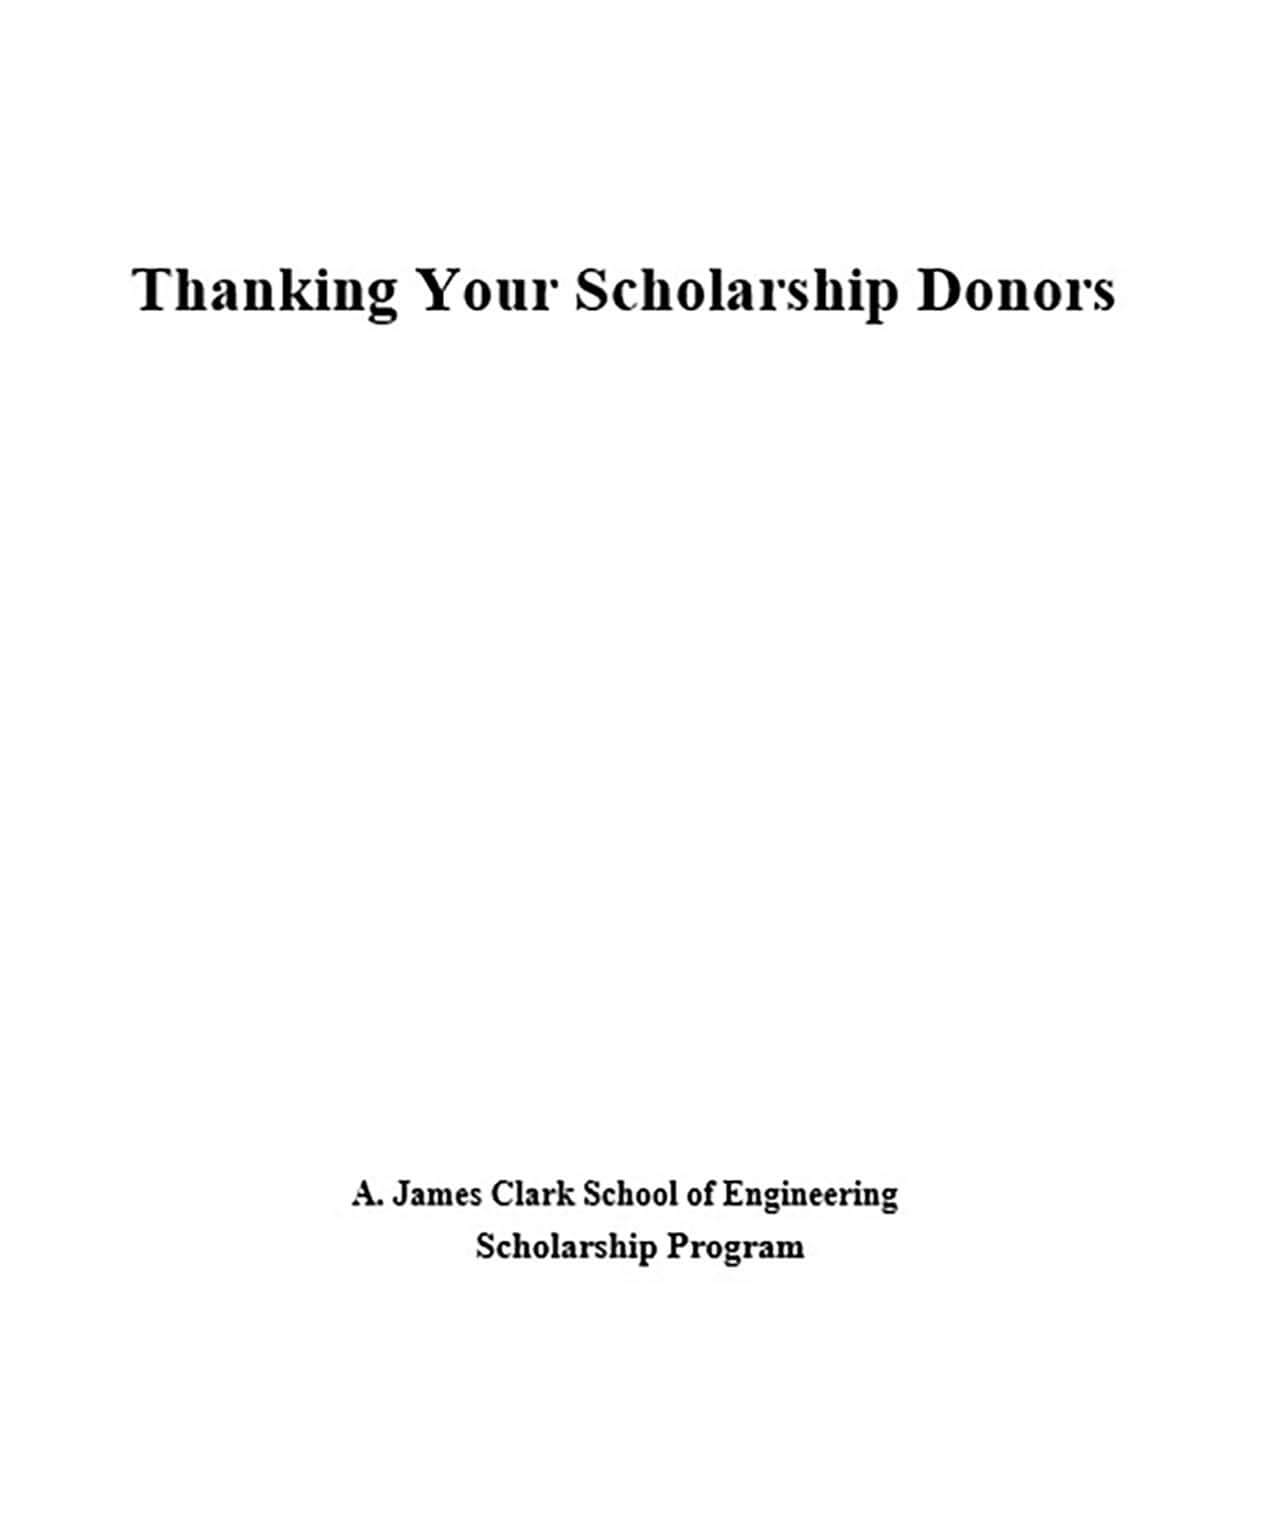 Scholarship Donation Thank You Letter